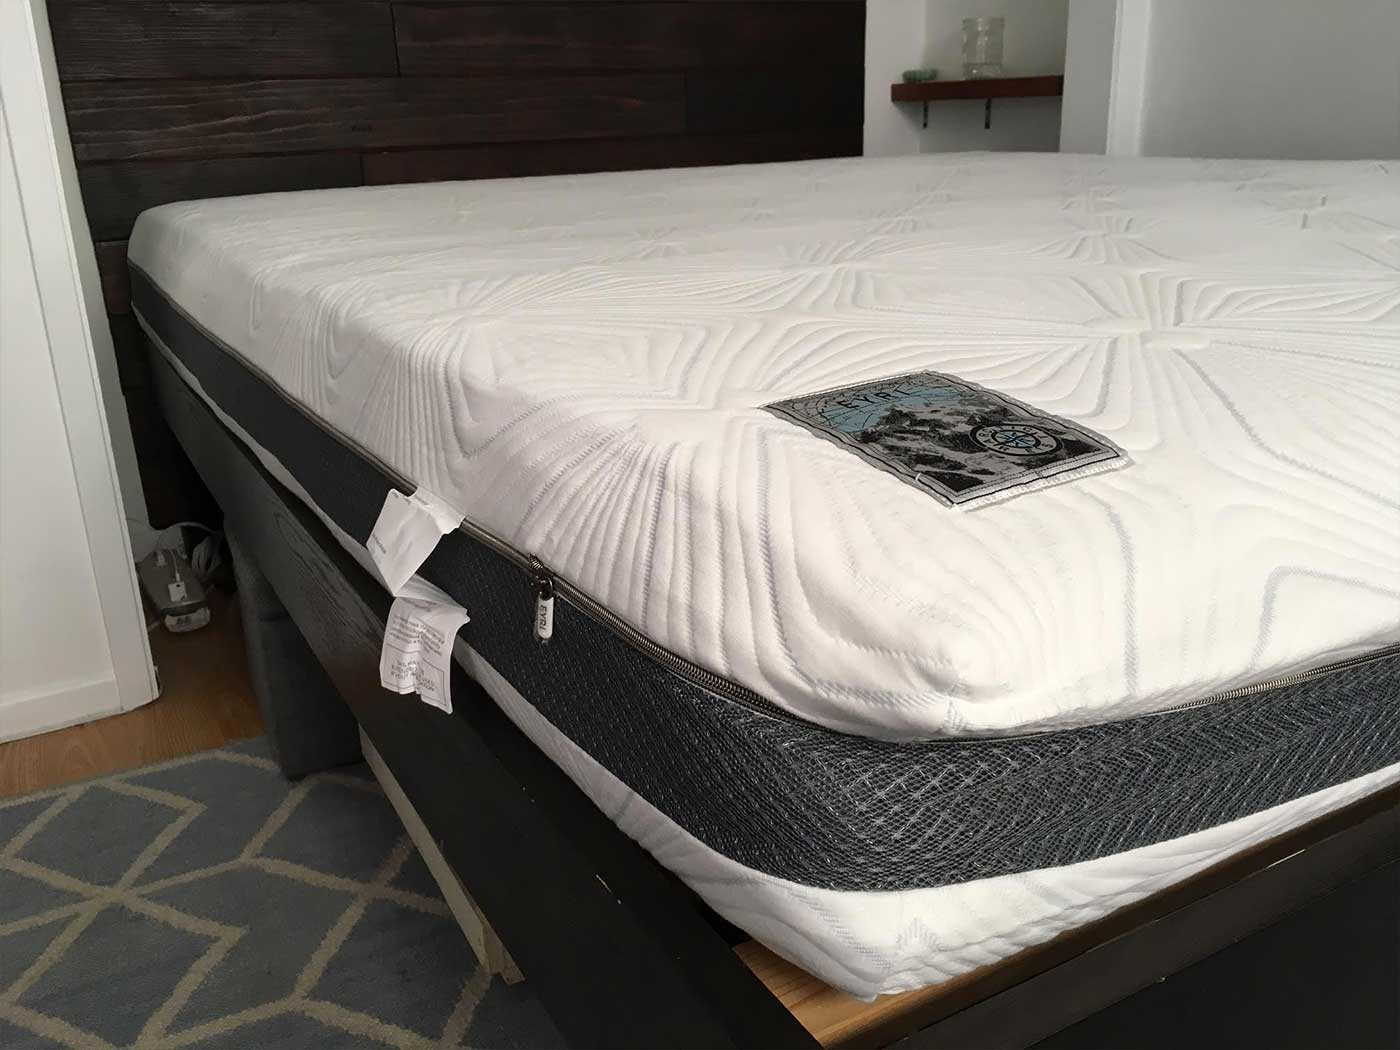 Eyri Mattress Review Iceland Invites You To Sleep Like A